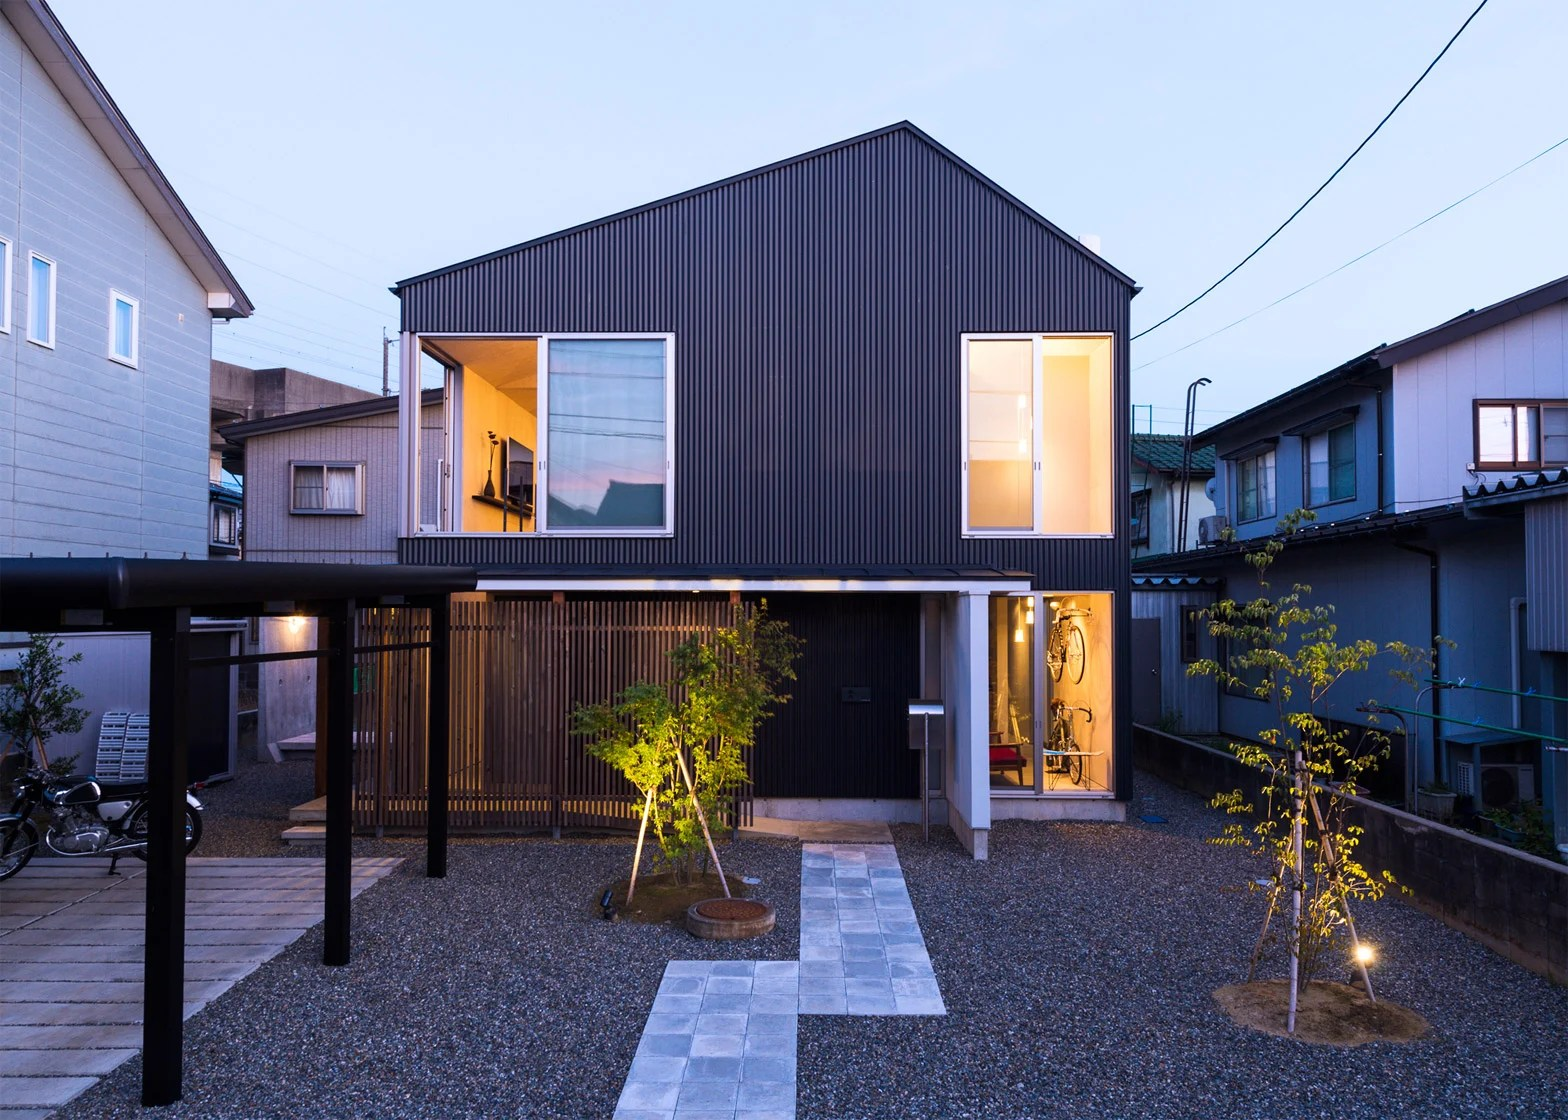 Hilarious Of Go Bang House By Shoji Takeru Architects Go Bang House By Takeru Shoji Architects References Japanese House Minecraft Japanese House Exterior curbed Modern Japanese House